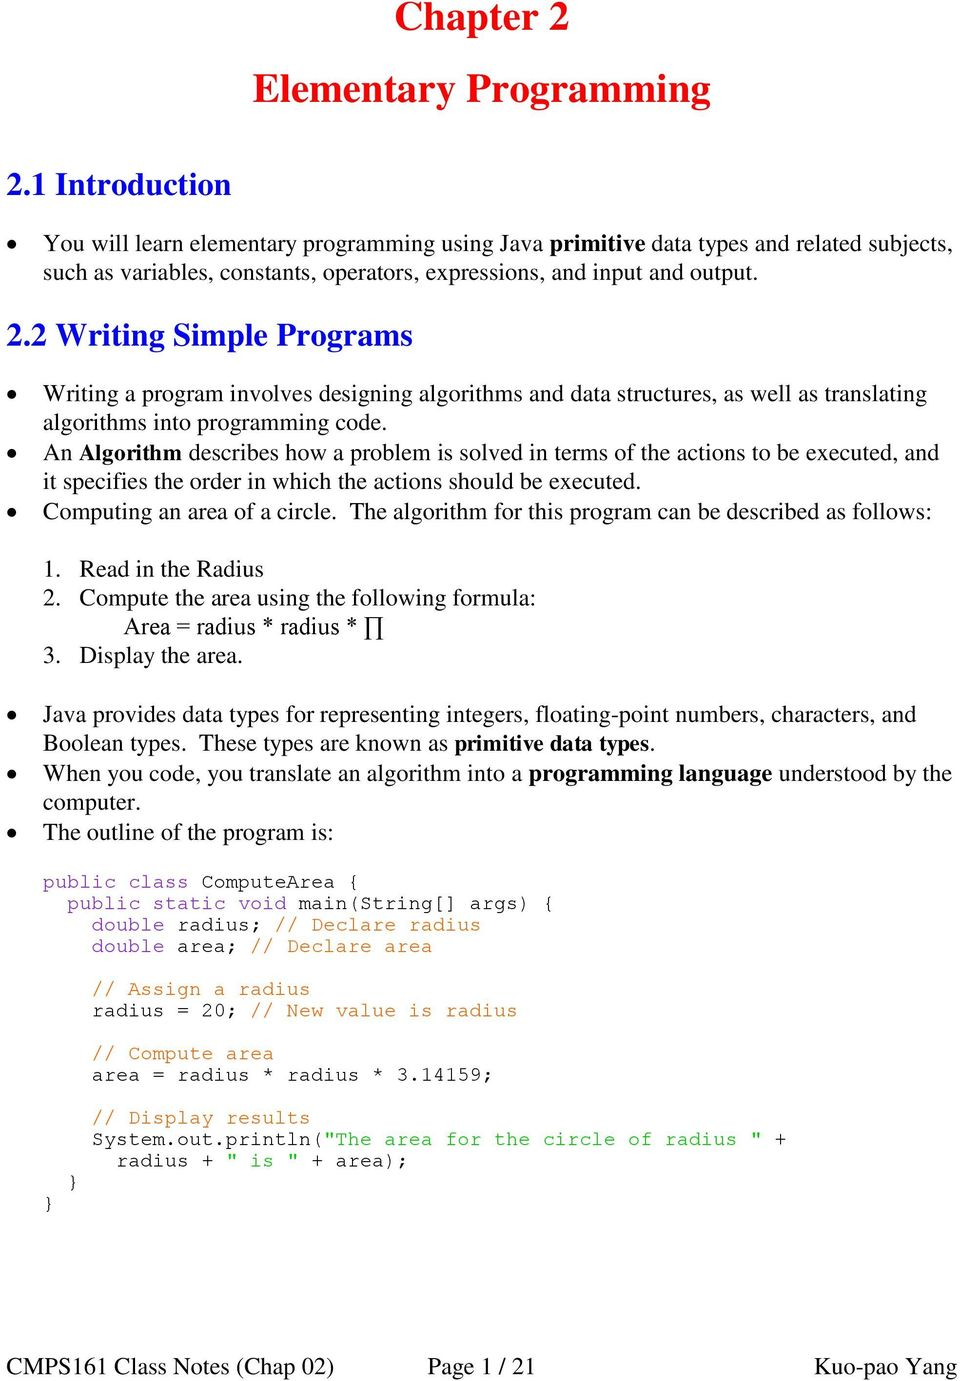 Chapter 2 Elementary Programming - PDF